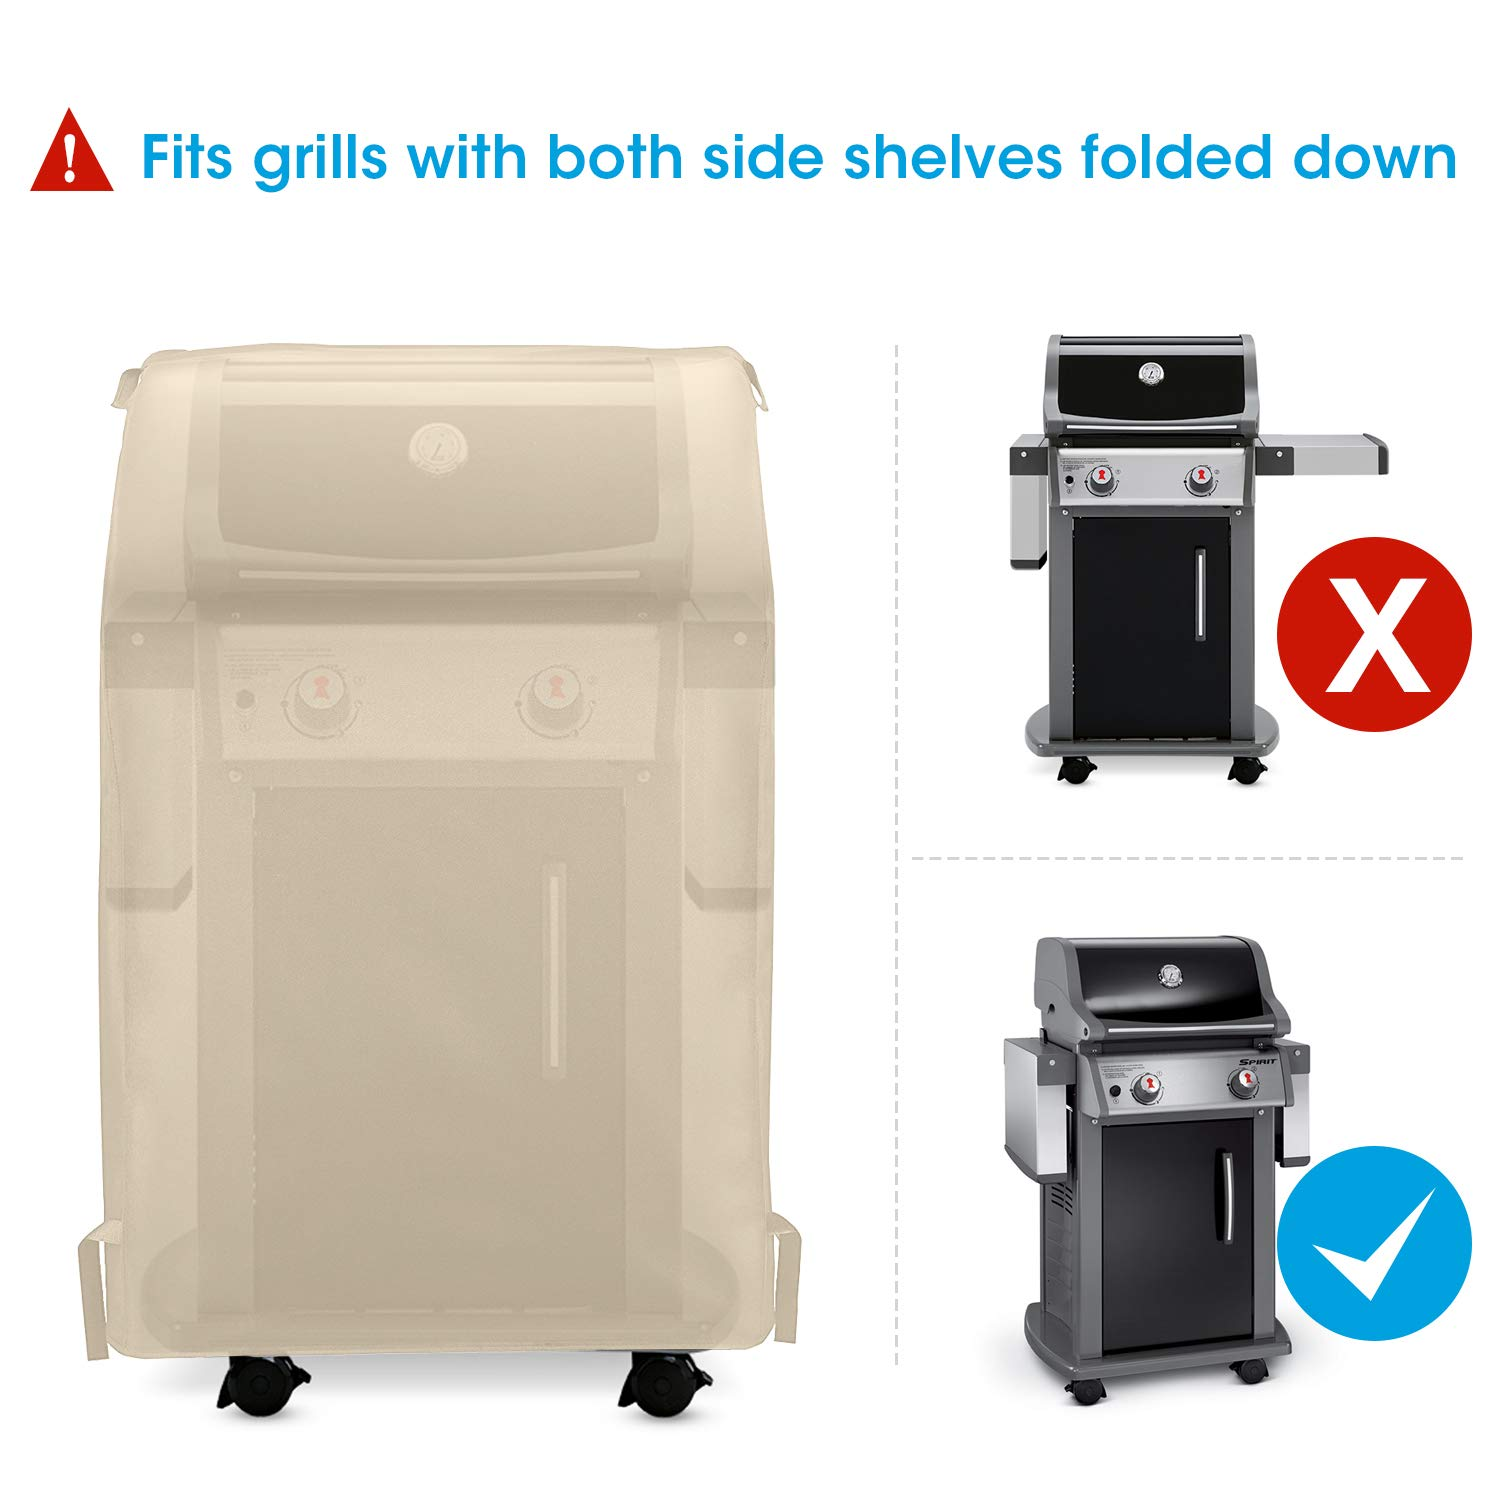 UNICOOK Outdoor 2 Burner Gas Grill Cover32 Inch Heavy Duty Waterproof Small Space Grill Cover Desert Sand Fits Grill with Collapsed Side Tables for Weber Char-Broil Dyna-Glo and More